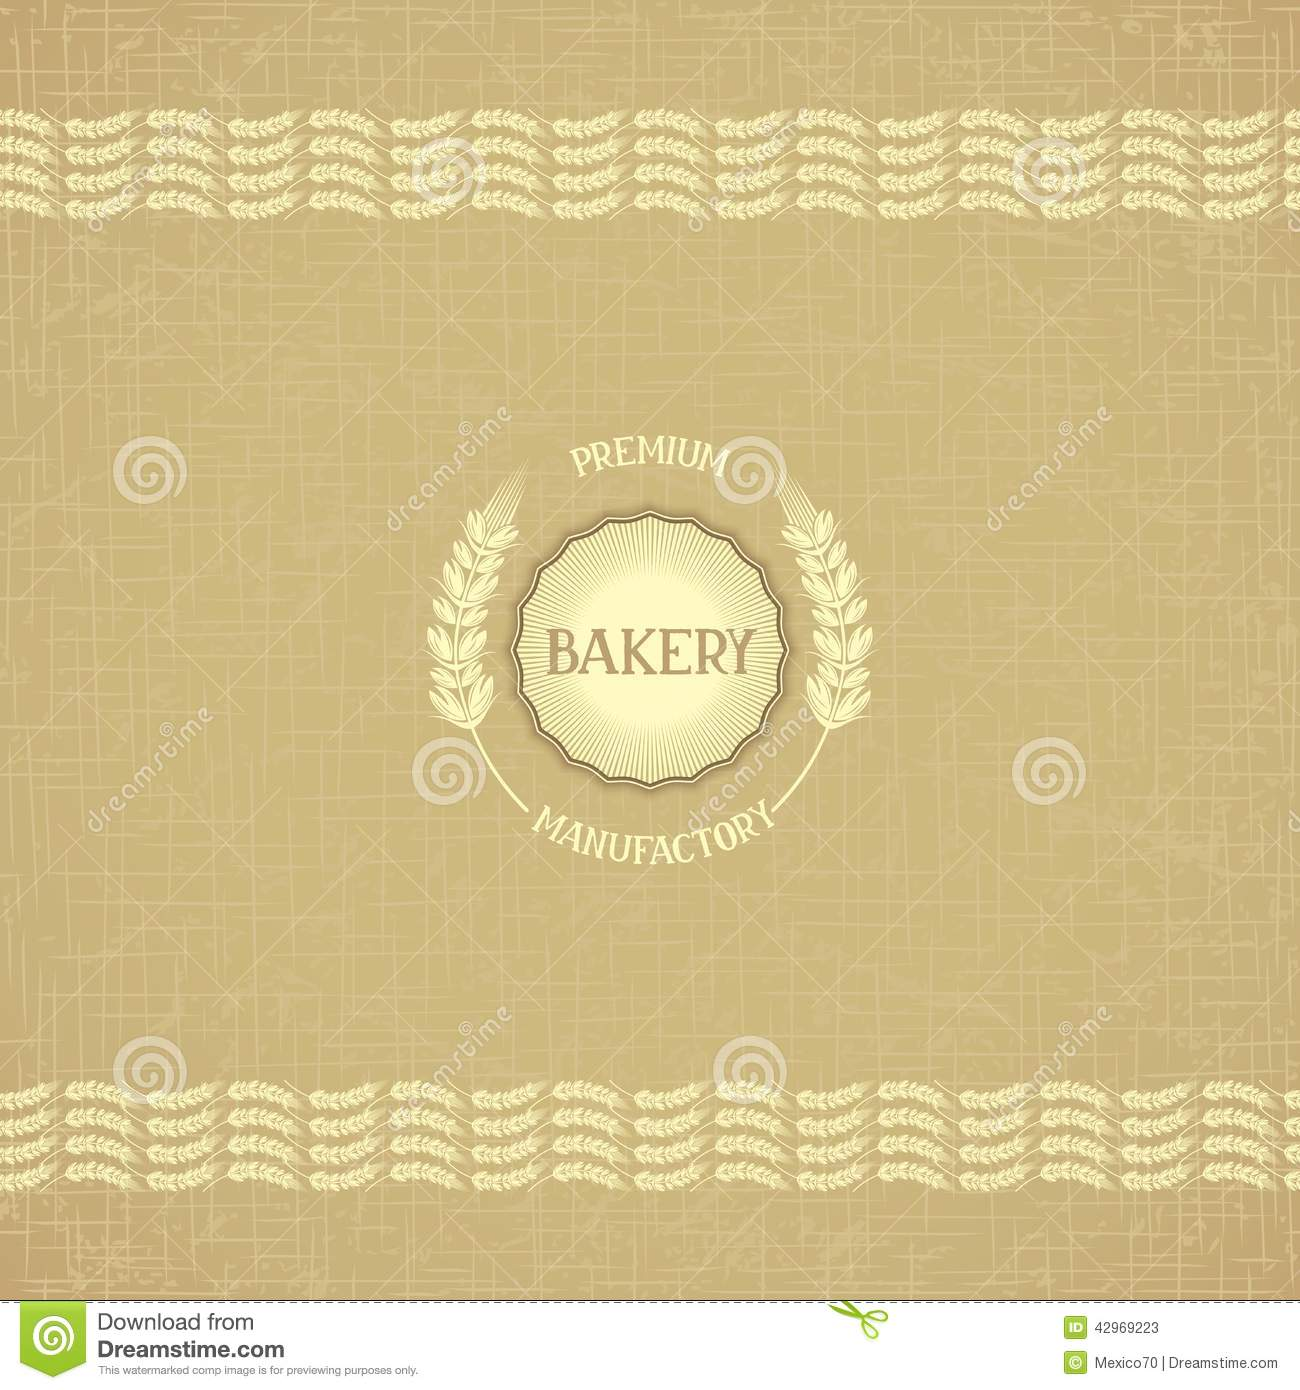 design for bakery stock vector  image of bakery  naturally